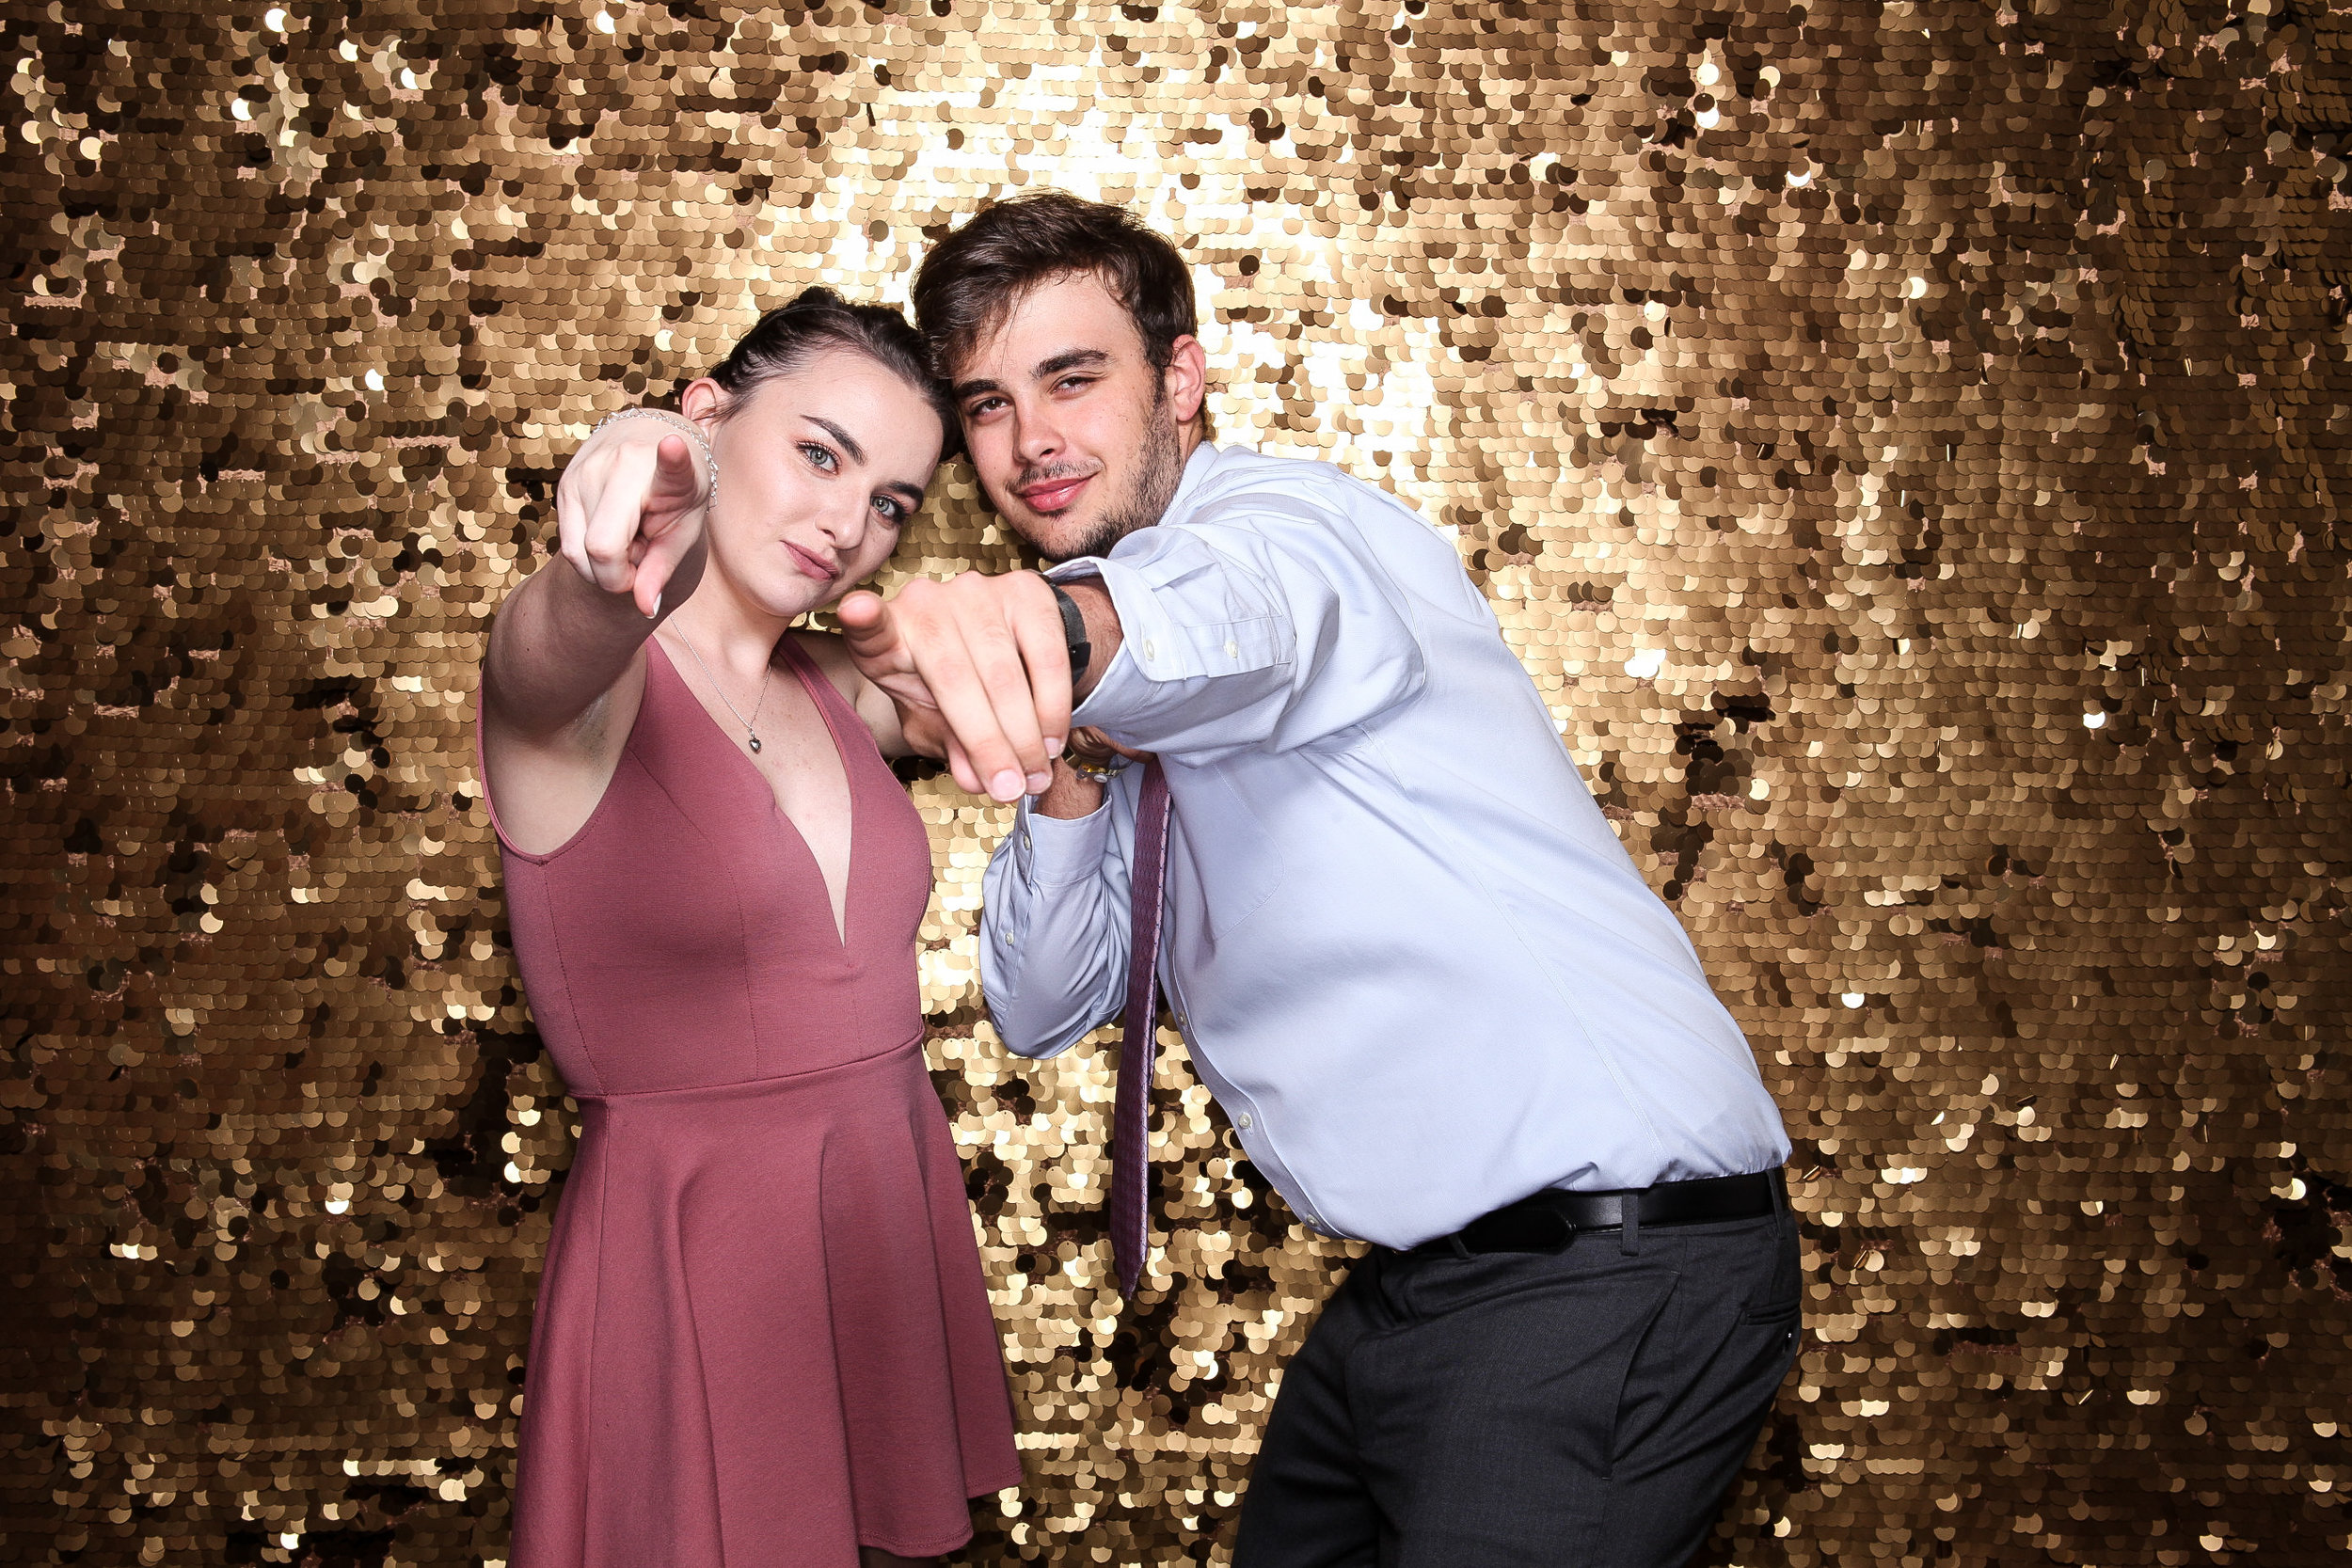 20190503_Adelphi_Senior_Formal-254.jpg